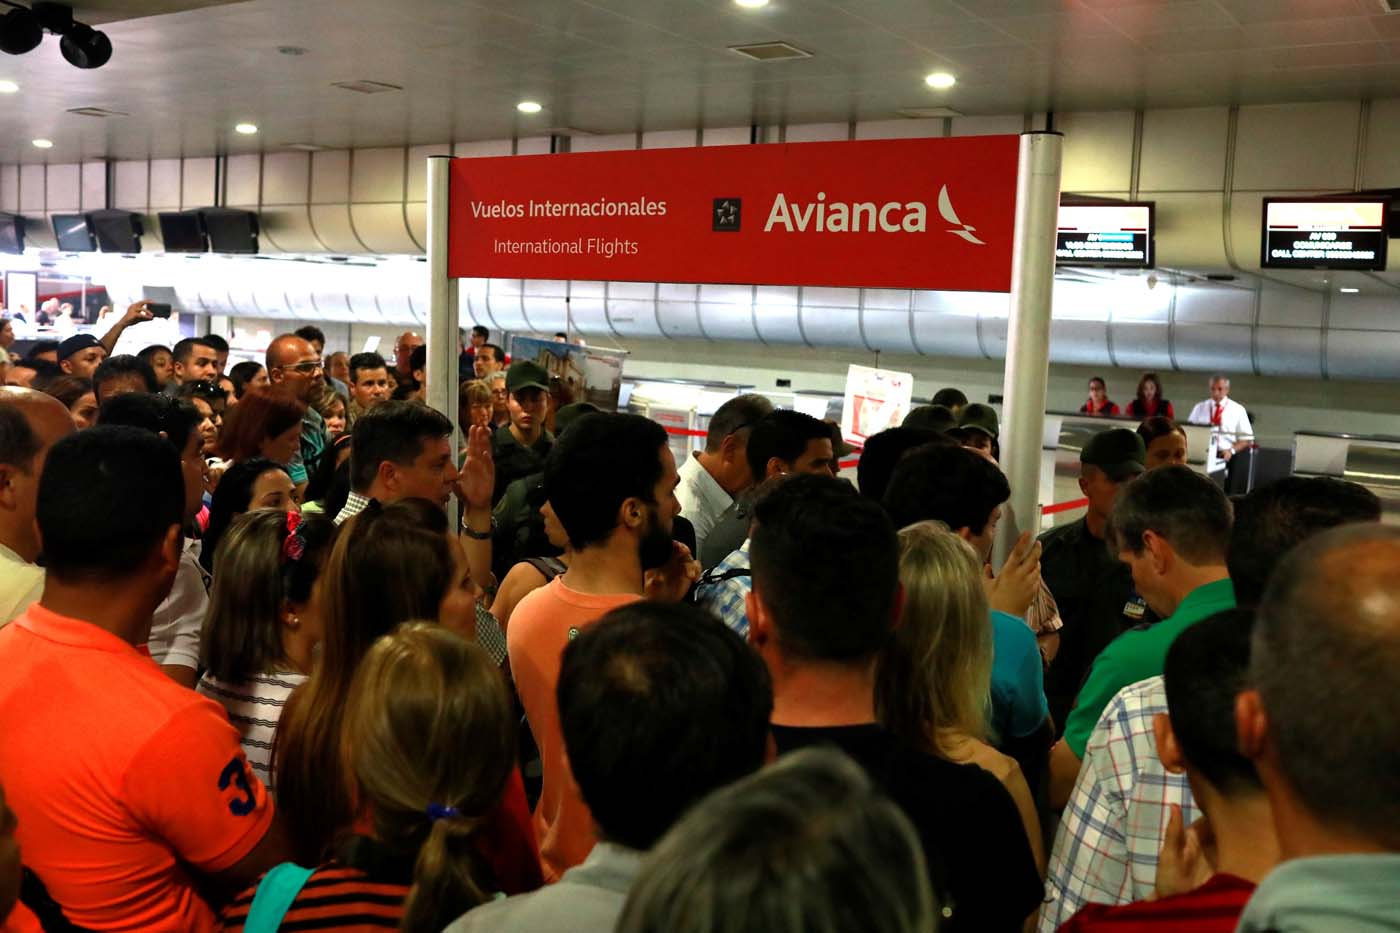 People congregate in front of counters of Avianca airline at the Simon Bolivar airport in Caracas, Venezuela July 27, 2017. REUTERS/Marco Bello